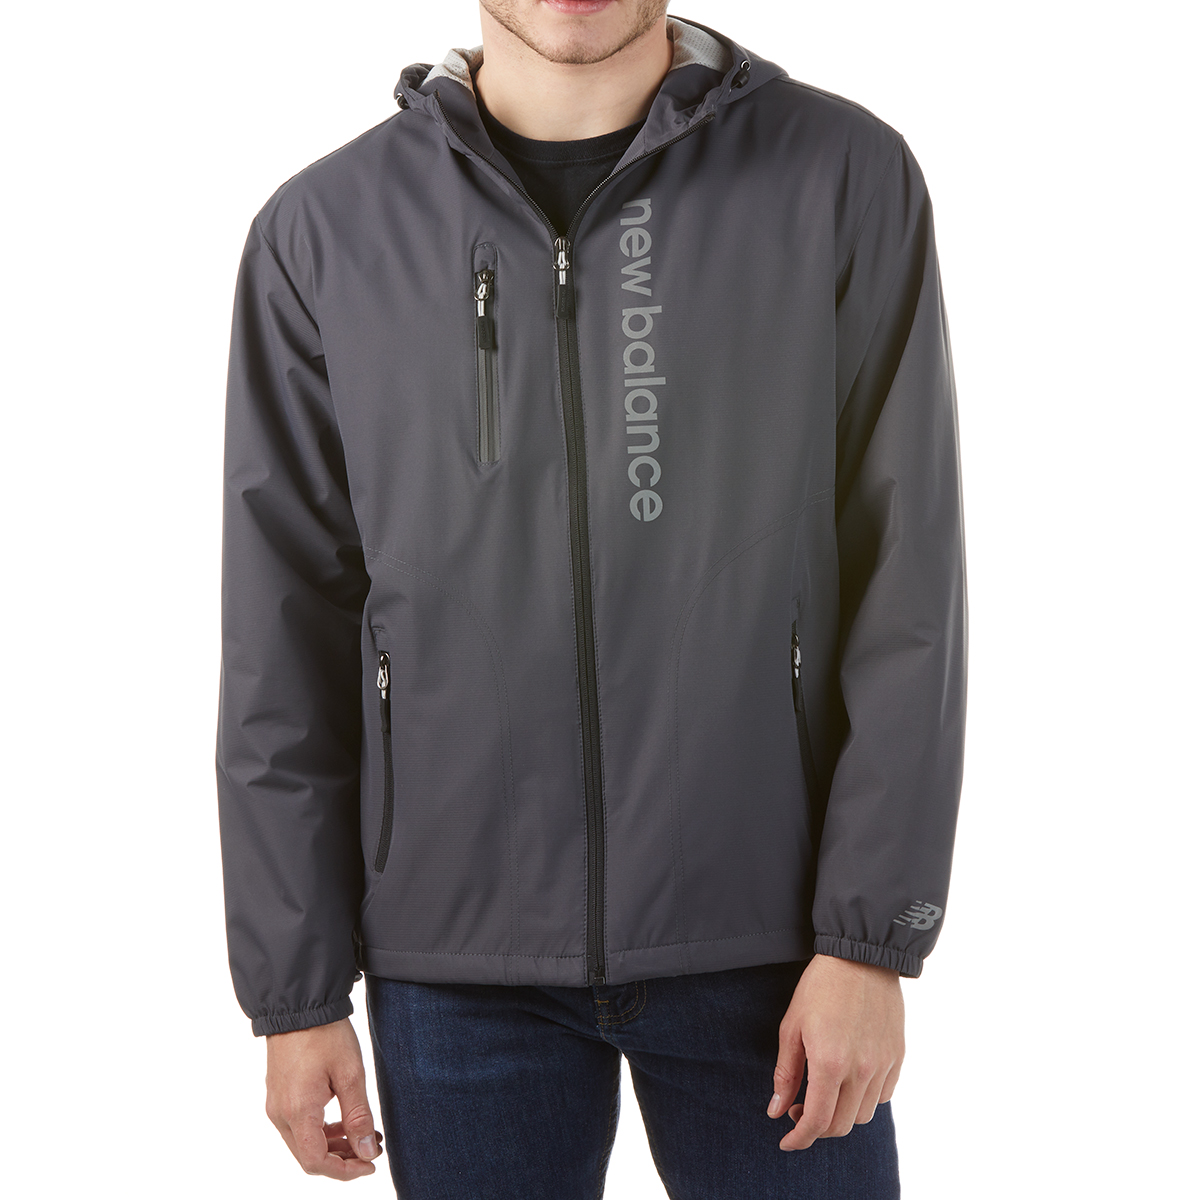 New Balance Men's Poly Dobby Signature Jacket - Black, M